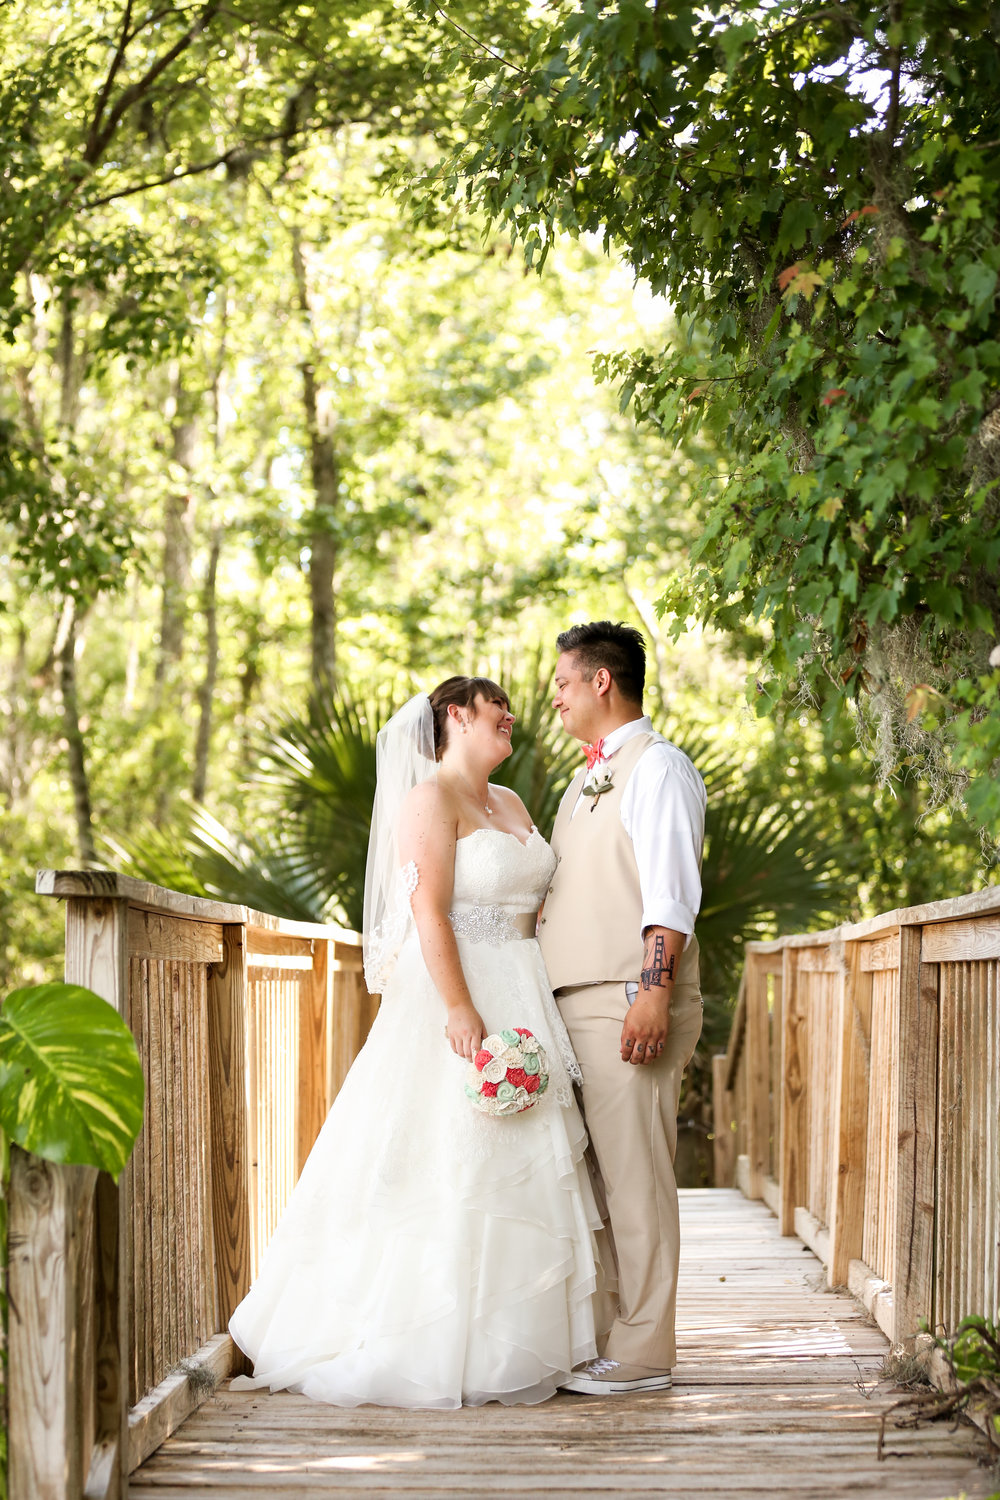 orlando-wedding-photographer-live-happy-studio-bridge-walkway-portrait-bow-tie-couple-mission-inn-resort.jpg